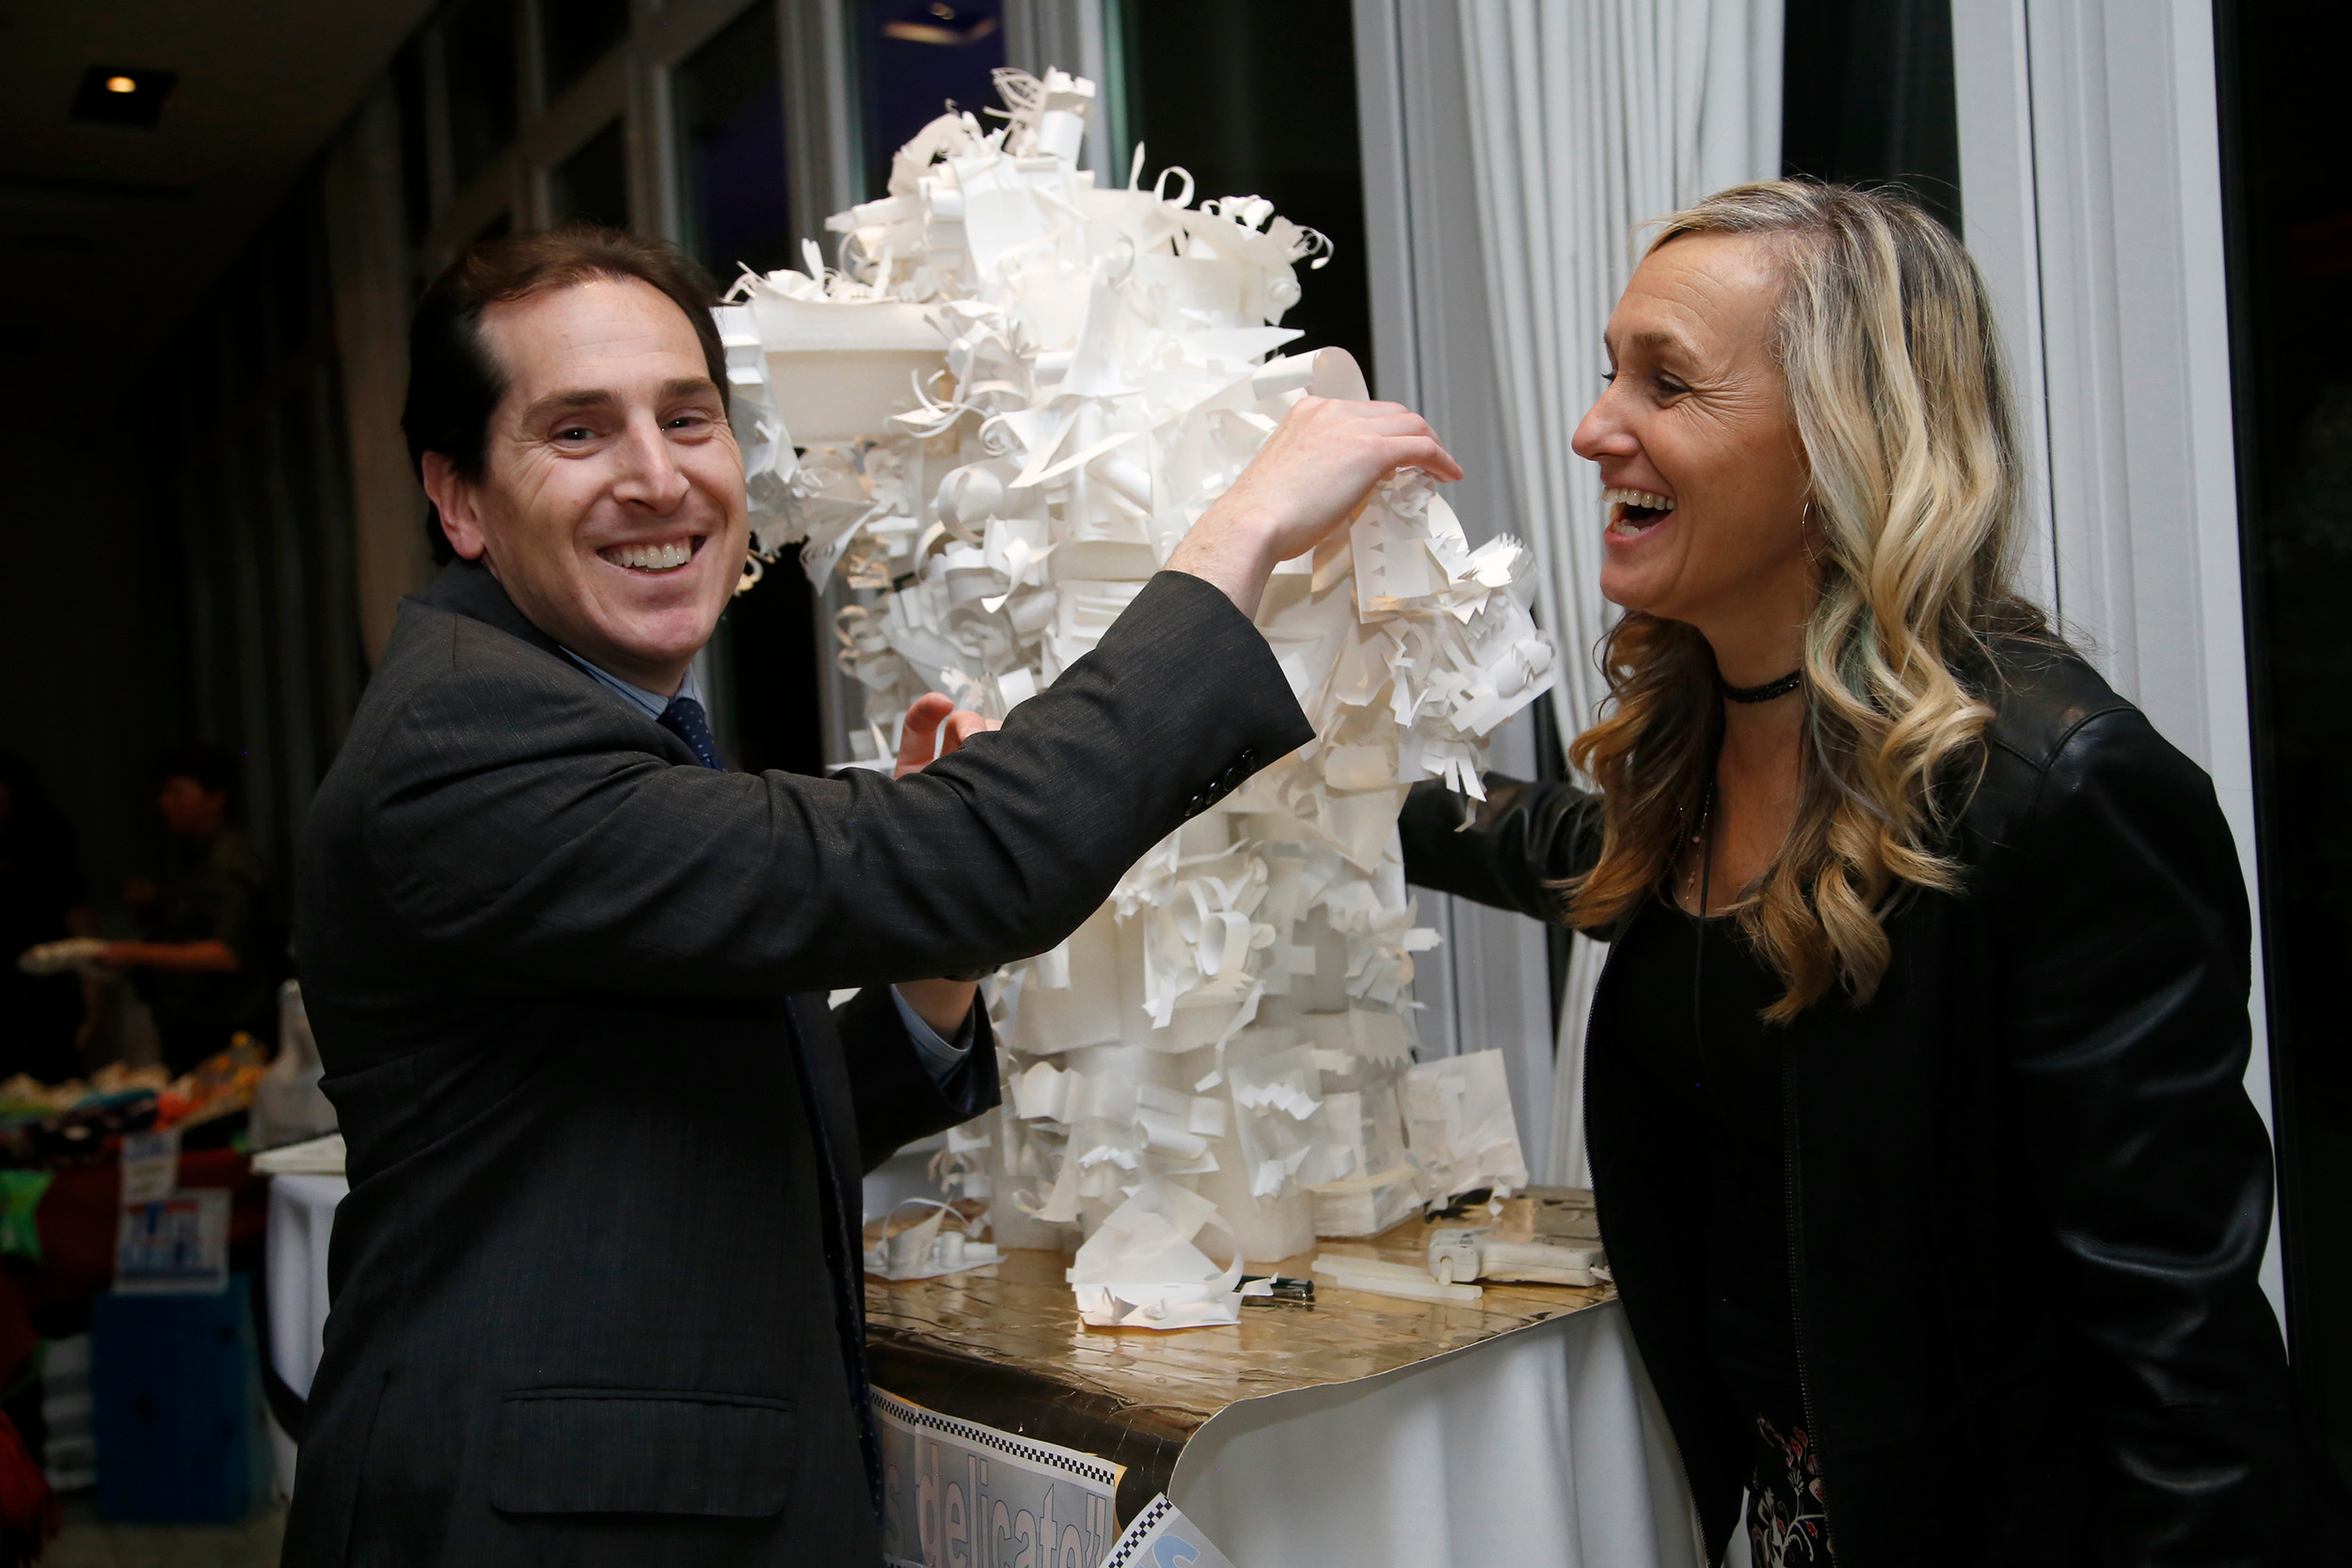 State Sen. Todd Kaminsky contributed to artist Laura O'Shaughnessy Swan's Louise Nevelson-inspired sculpture.